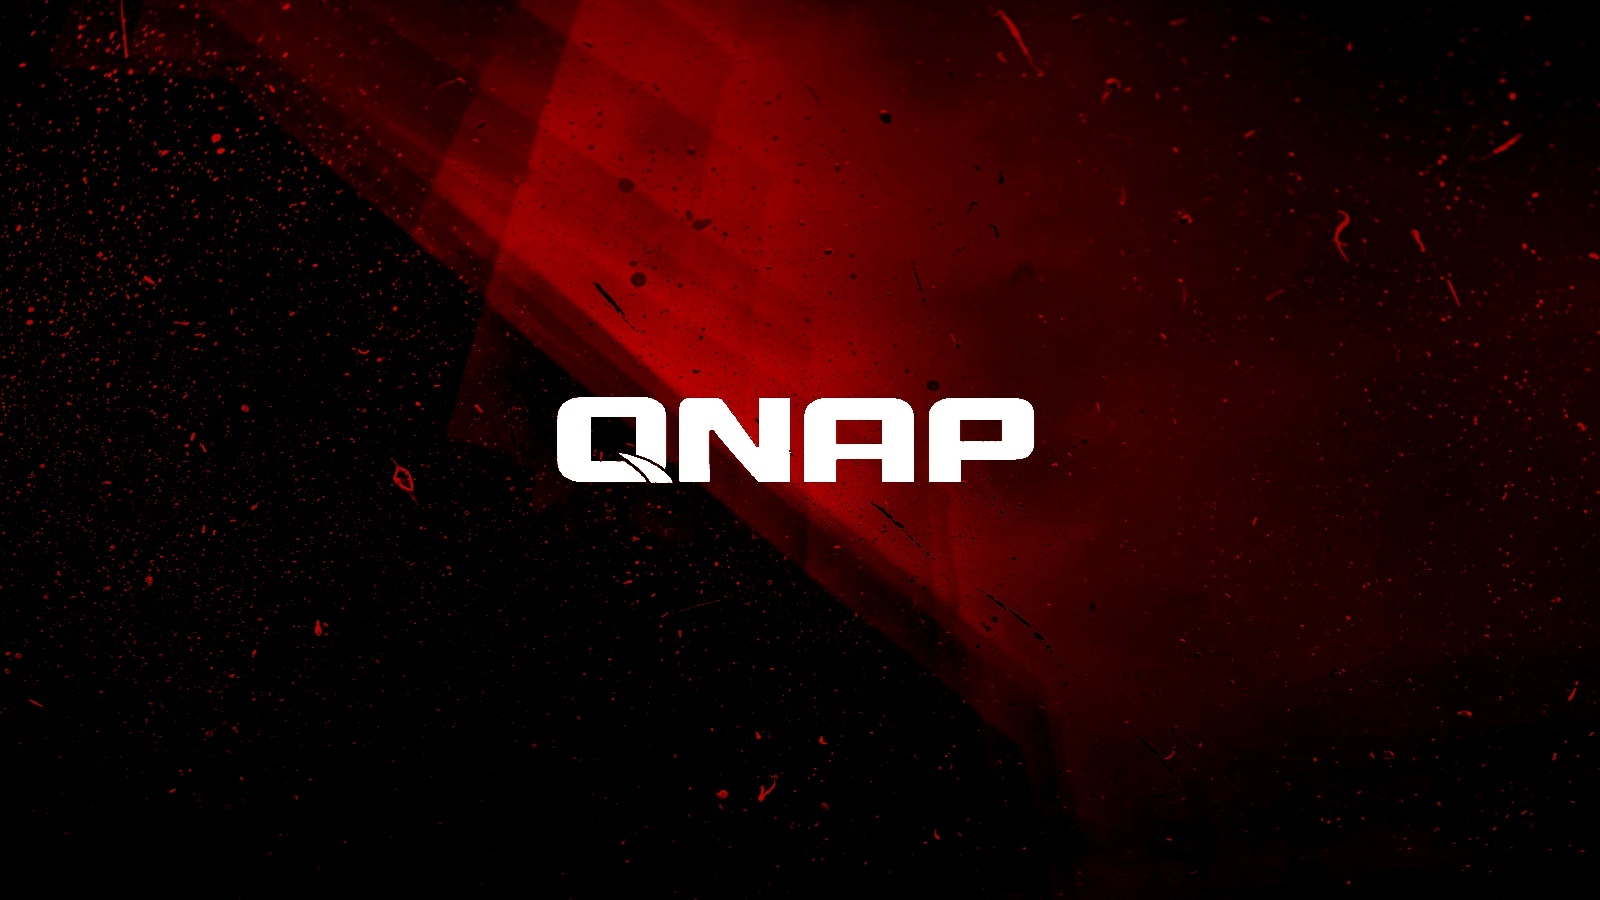 QNAP fixes bugs that let attackers run malicious code remotely